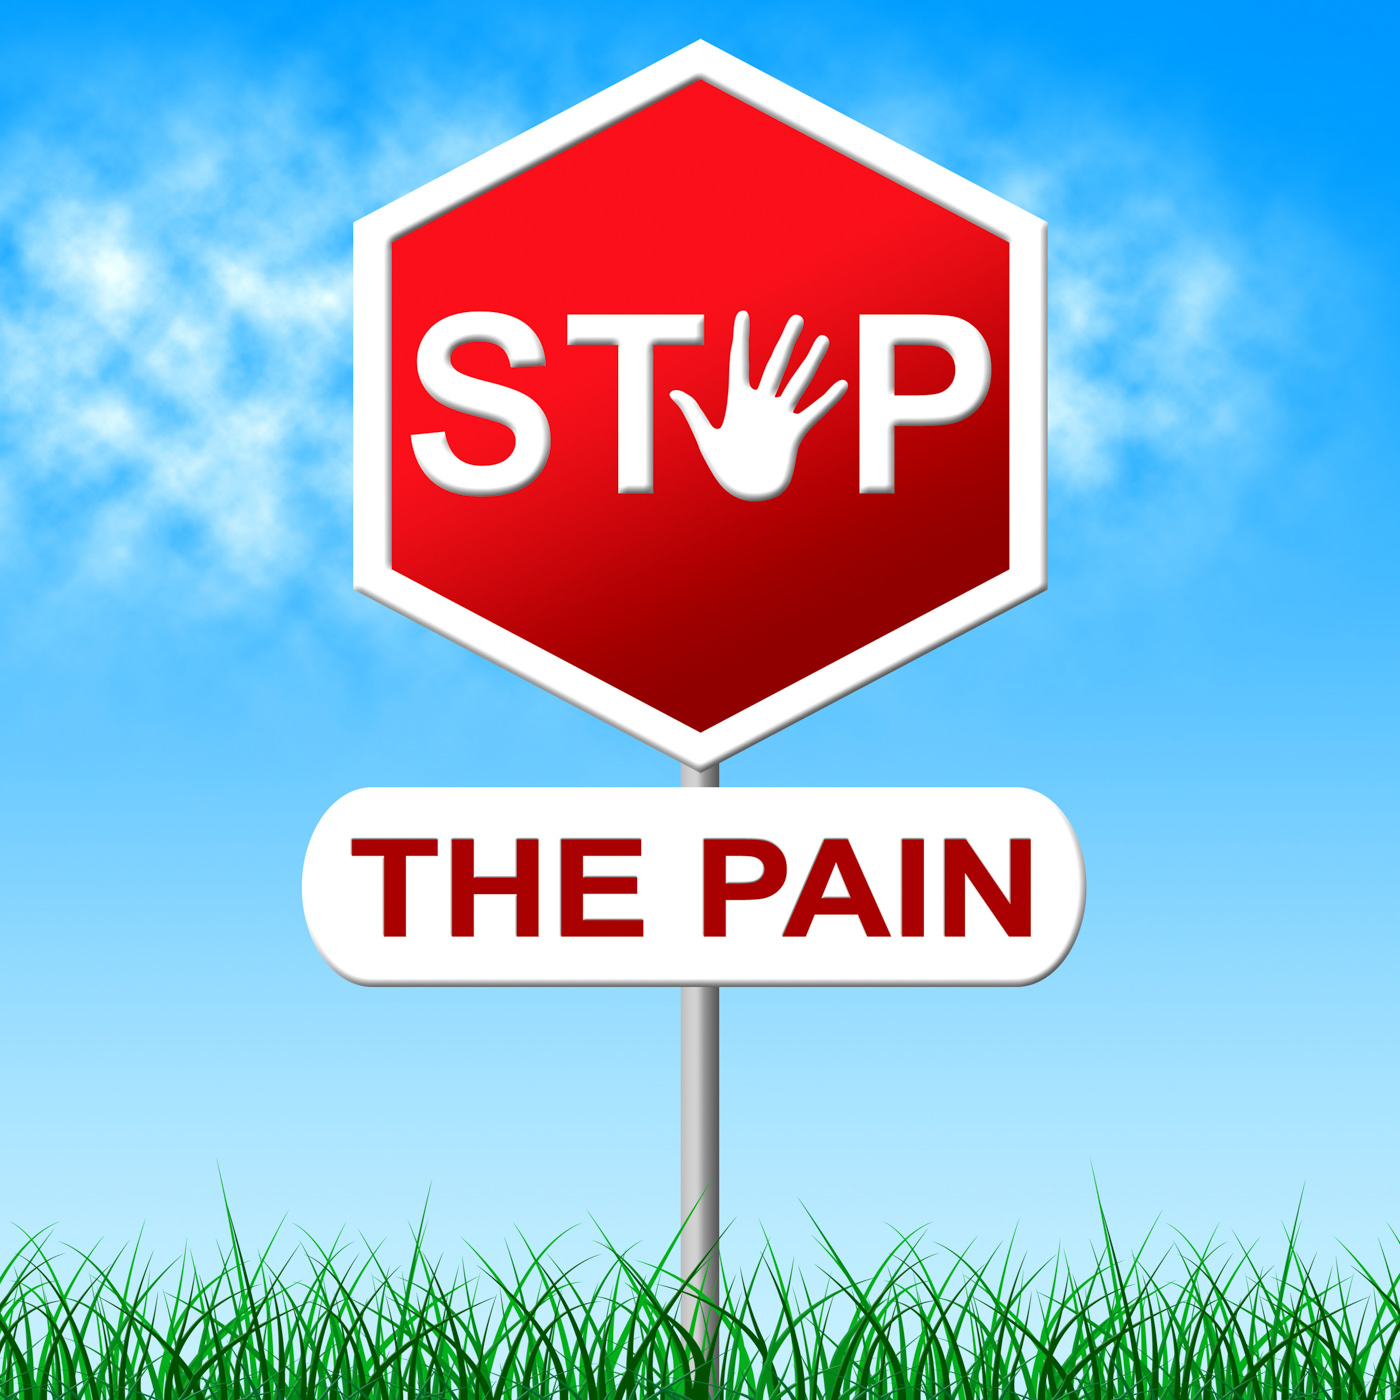 Stop pain means torture danger and caution photo